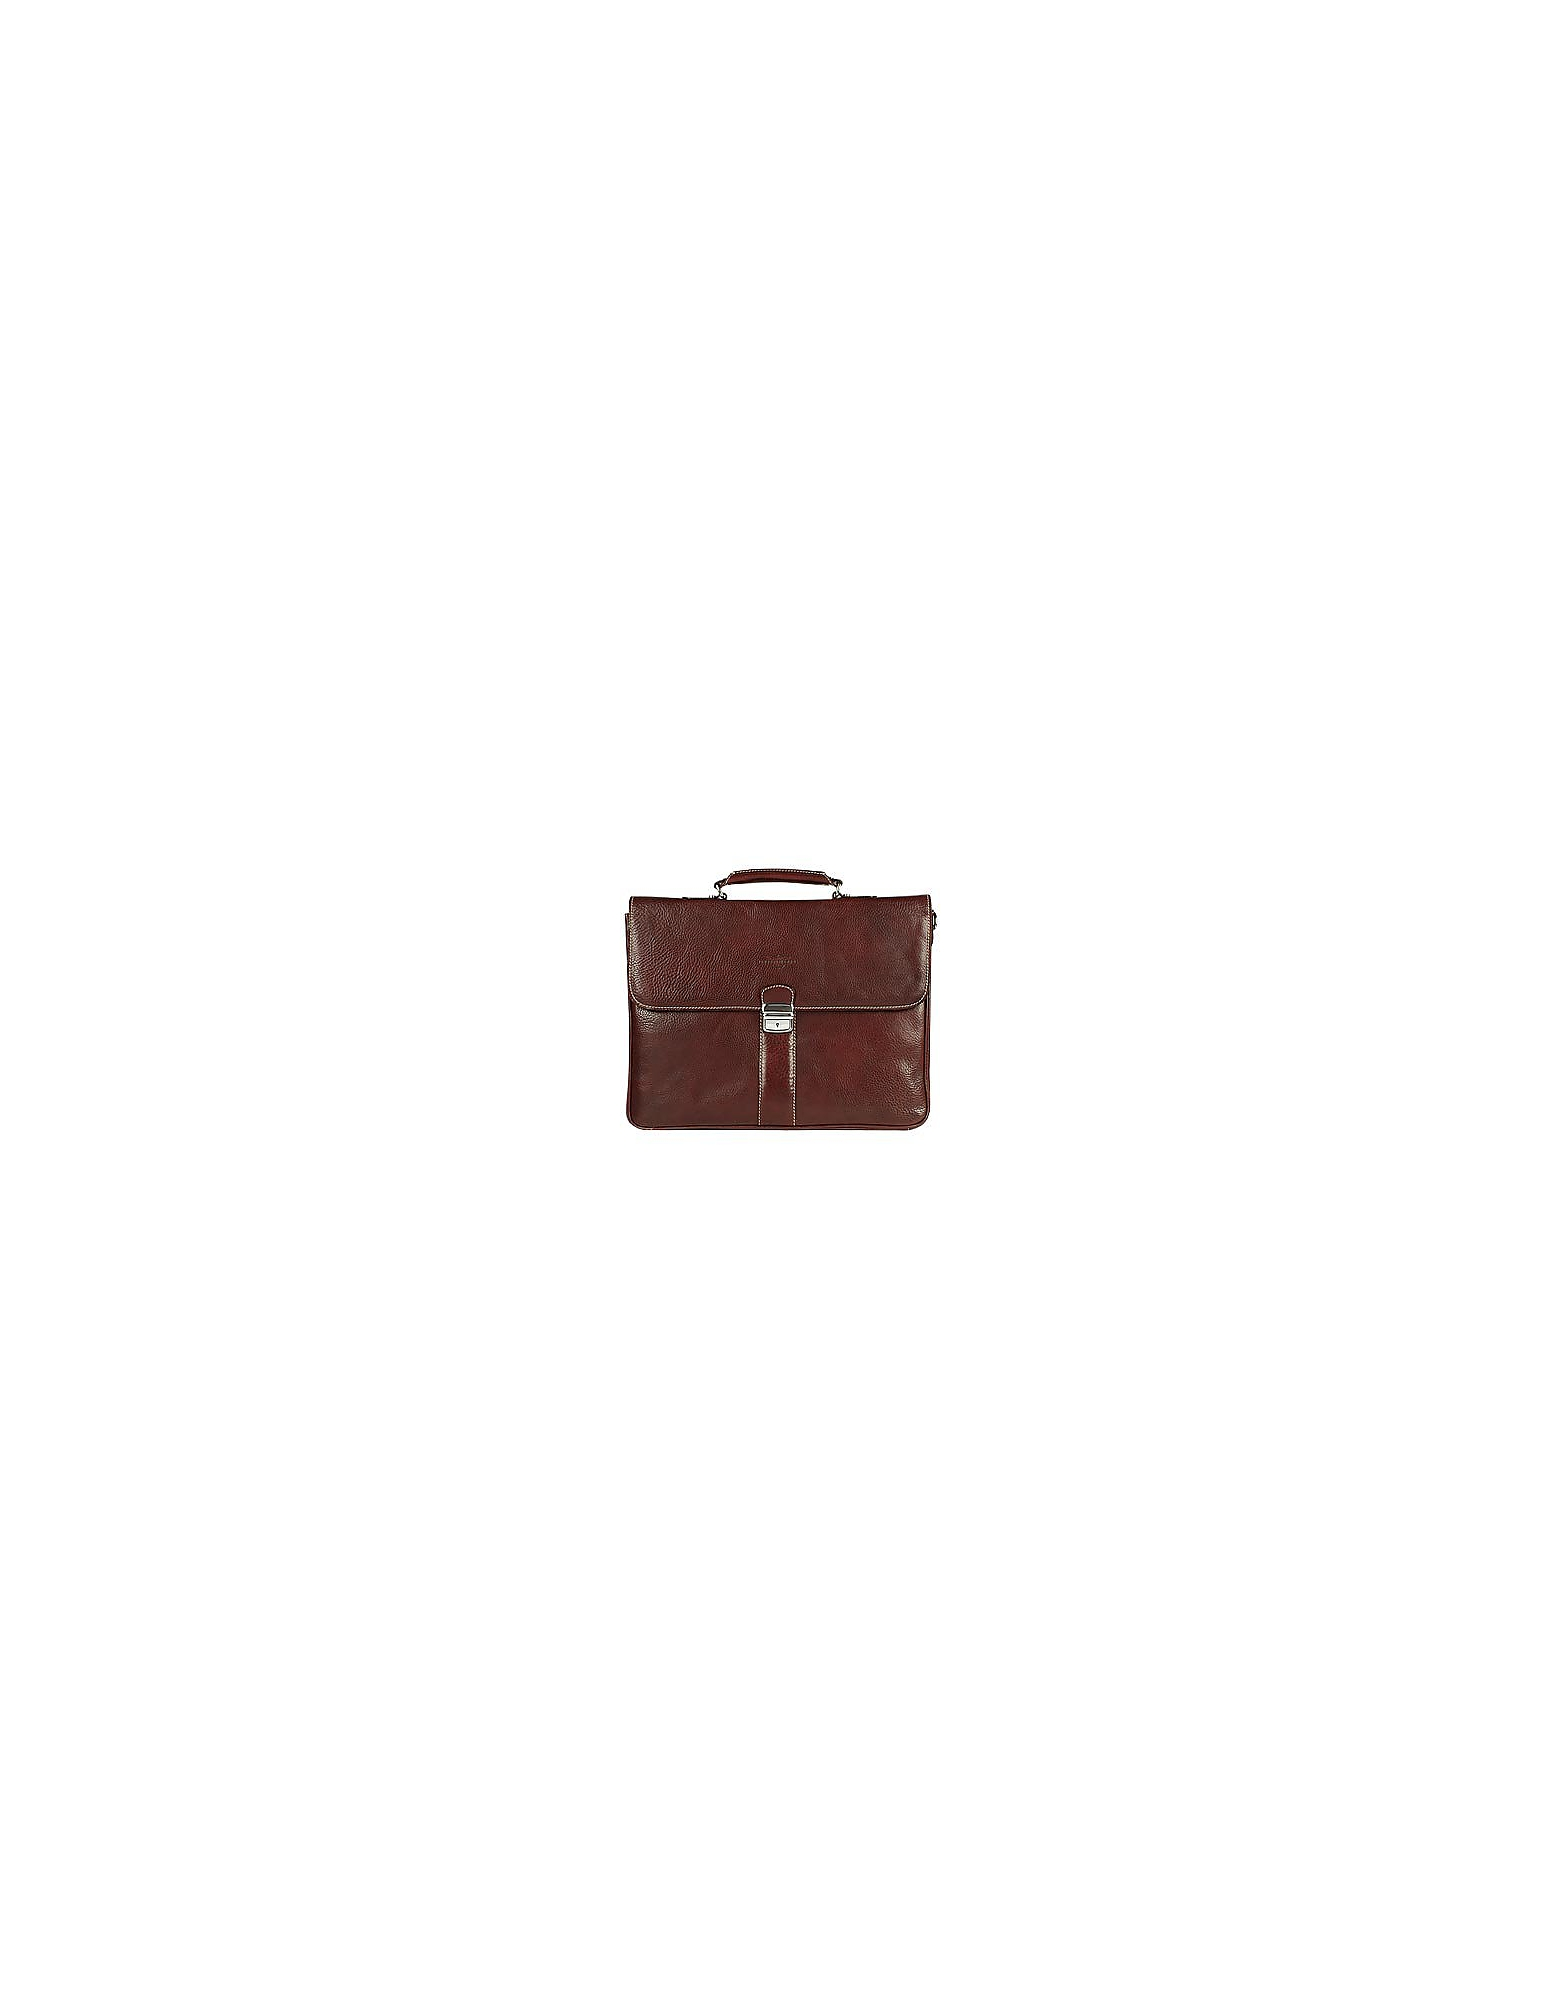 Robe di Firenze Briefcases, Dark Brown Double Gusset Leather Briefcase